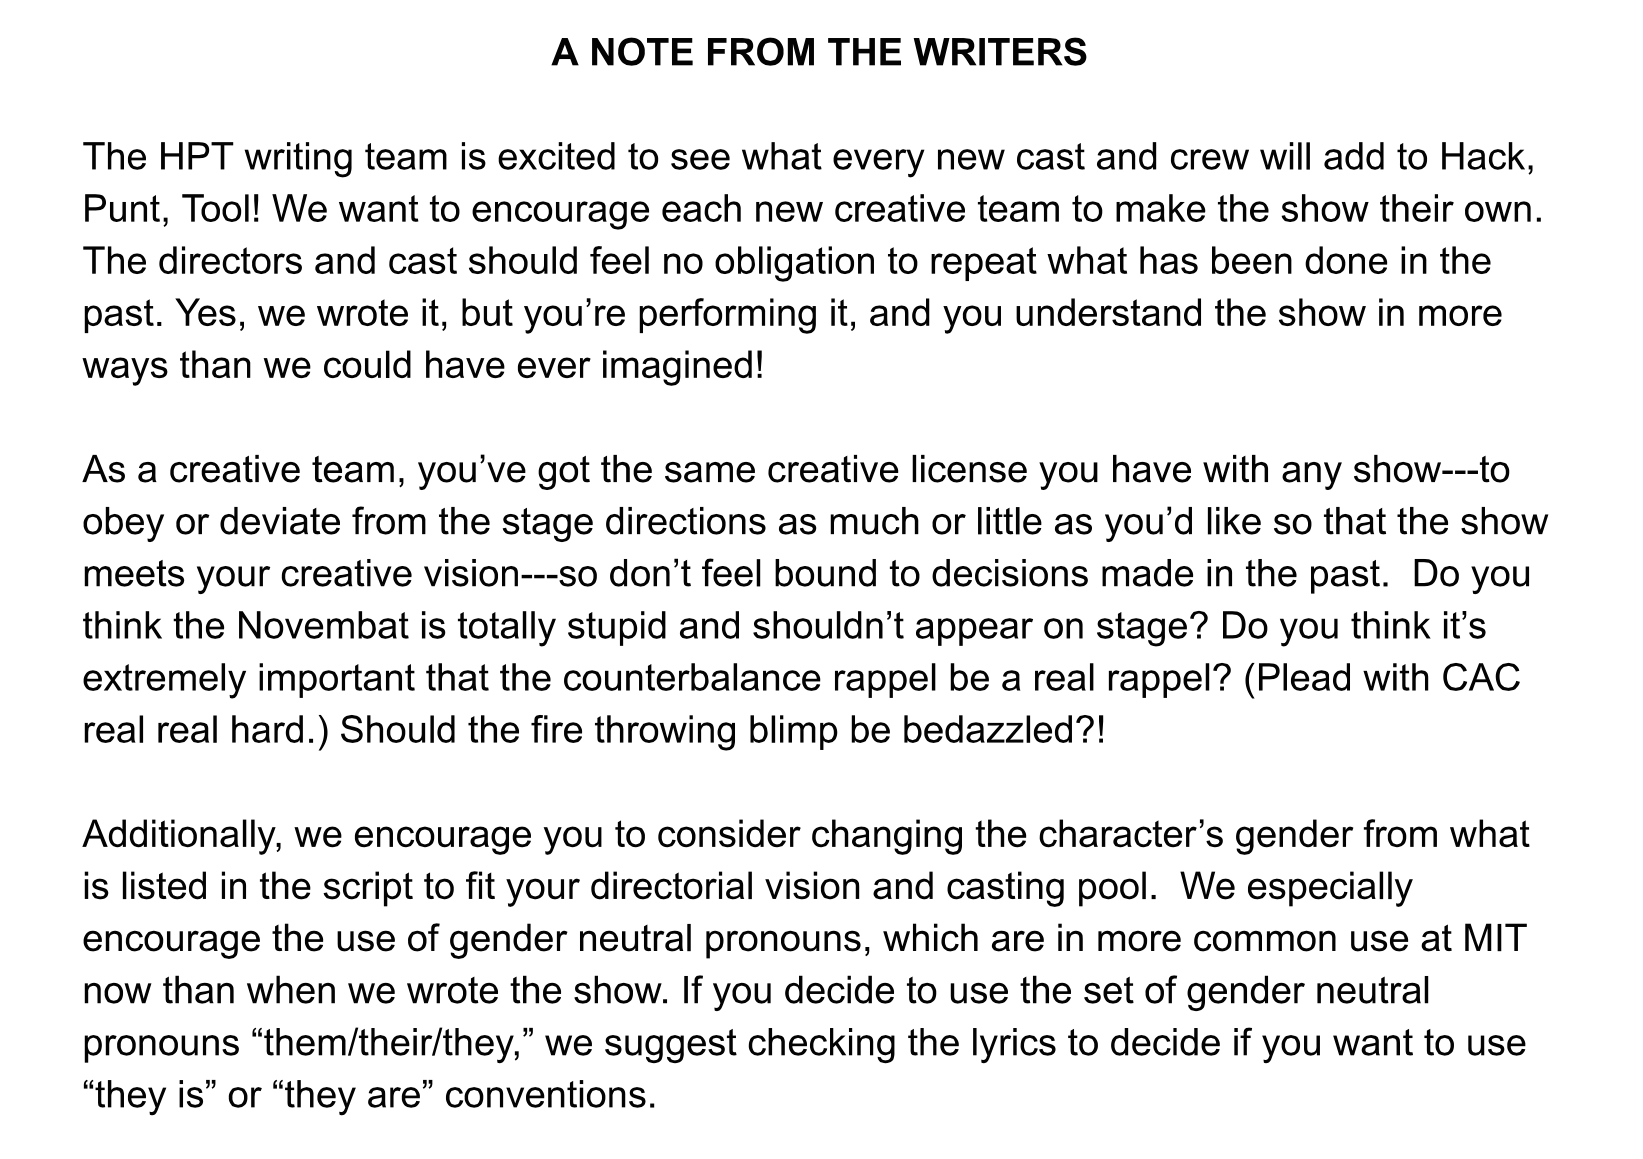 hpt_revival_writers_note